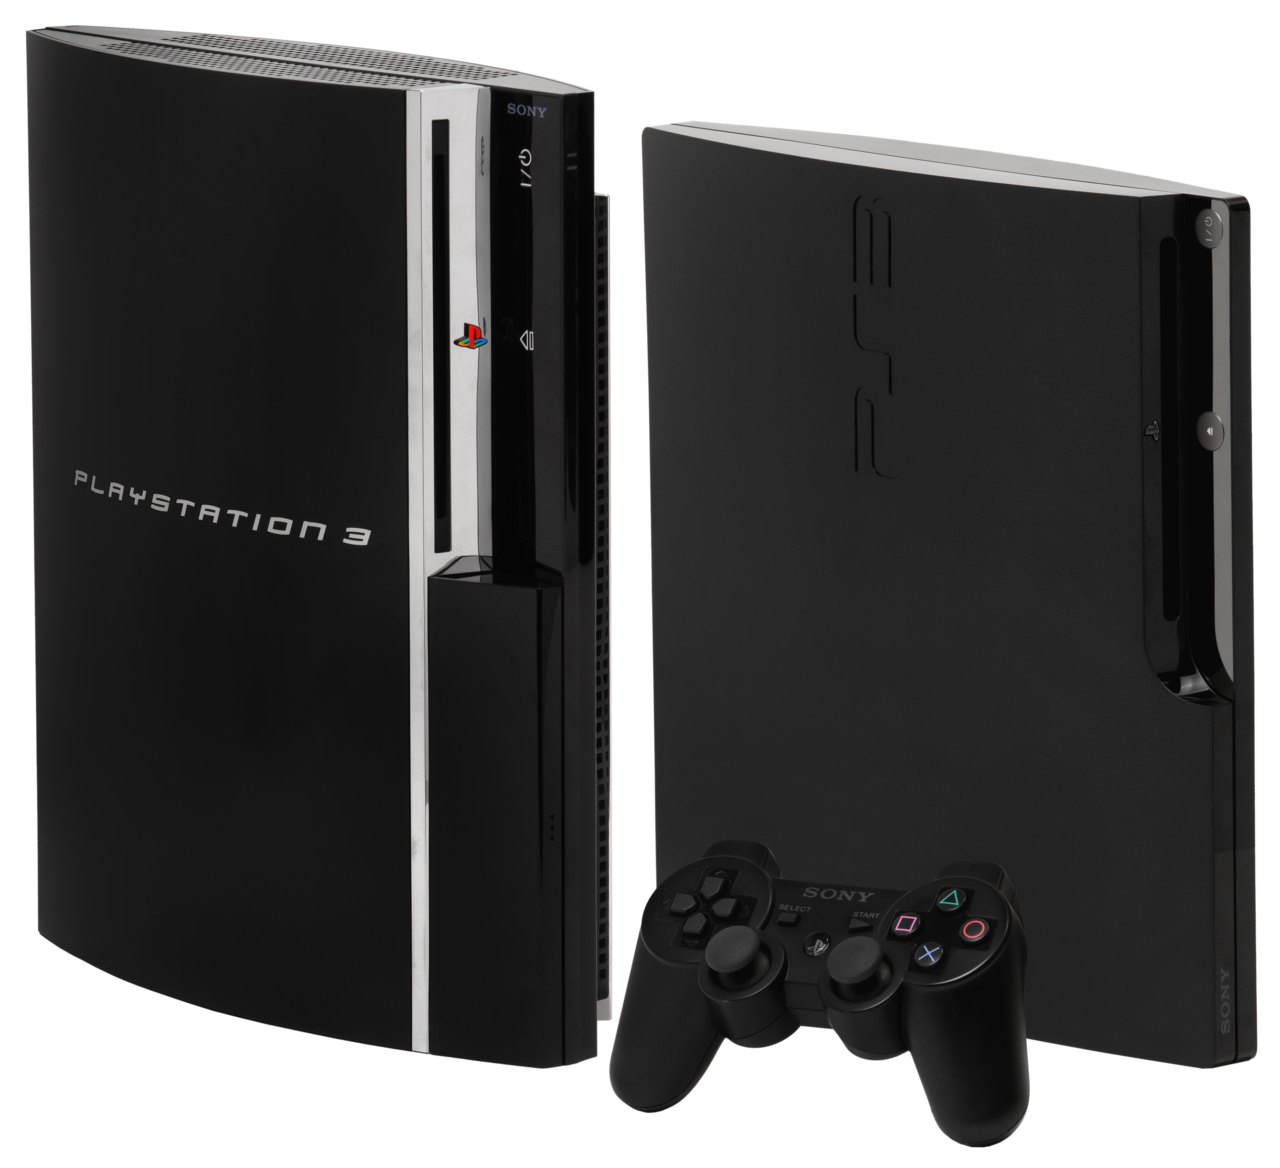 Sony PlayStation 3 picture